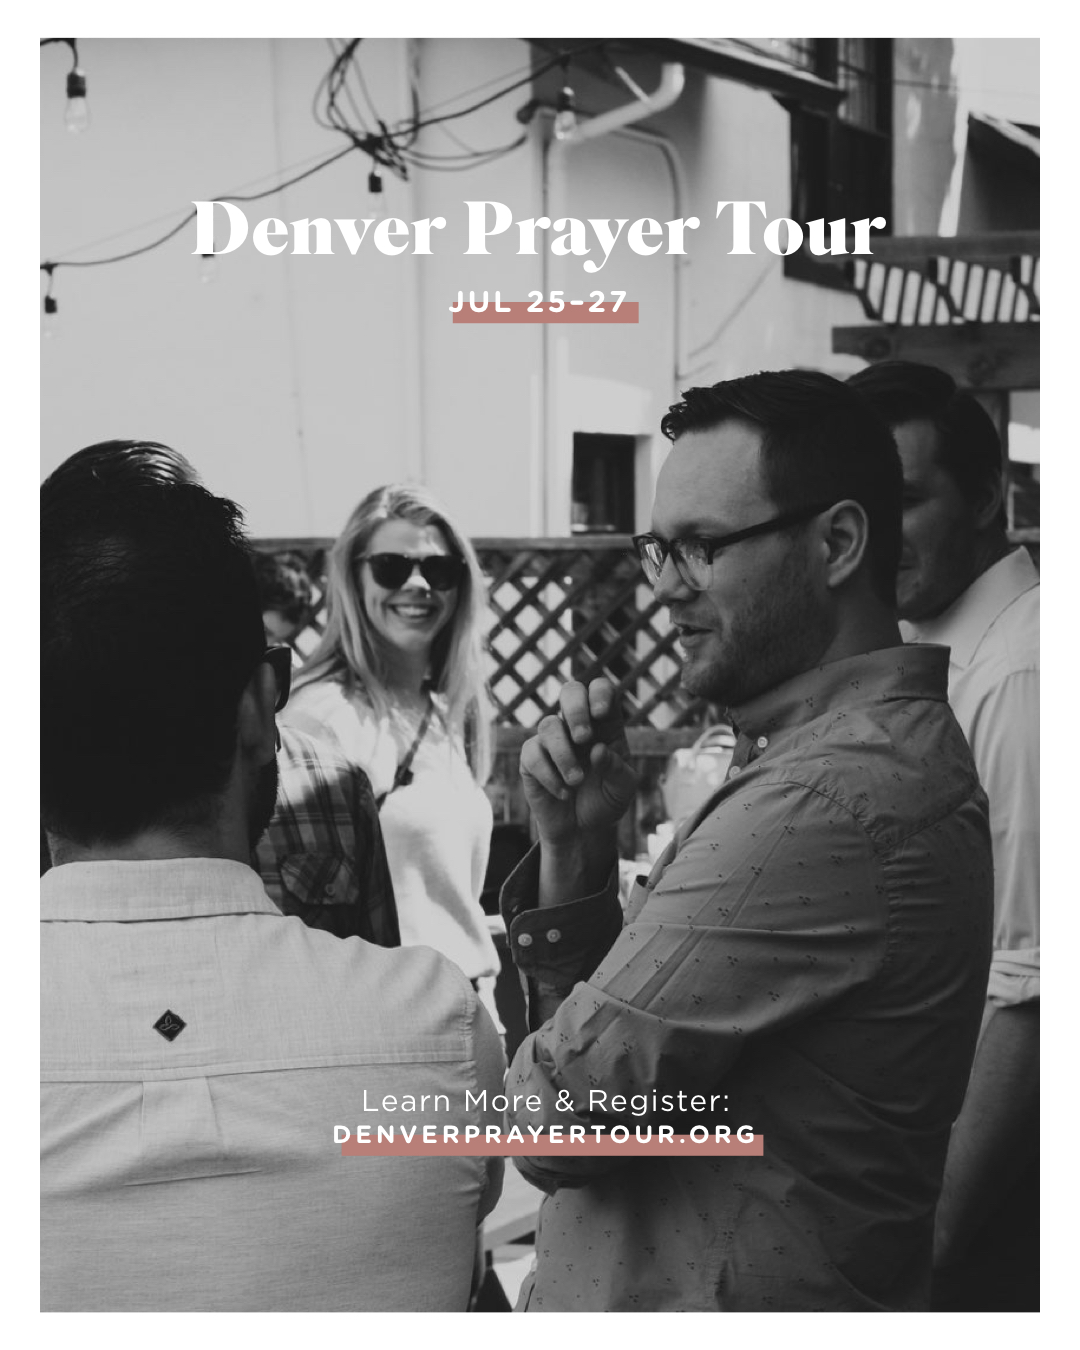 Anthem Denver Prayer Tour - The Anthem Denver team is inviting the entire family of churches to join them in visiting and praying for the city. As we walk Denver and its neighborhoods, we'll seek to understand God's heart for the people there, to discern spiritual strongholds, and to call upon the Lord to bring spiritual, relational, and cultural renewal to Denver through the gospel of Jesus Christ. The tour will include earnest prayer, exploration of the city, teachings from different leaders, times of worship together, and a ton more.Location: Denver, CODays: Jul 25–27Cost: $50 + flights, accommodations, and most meals